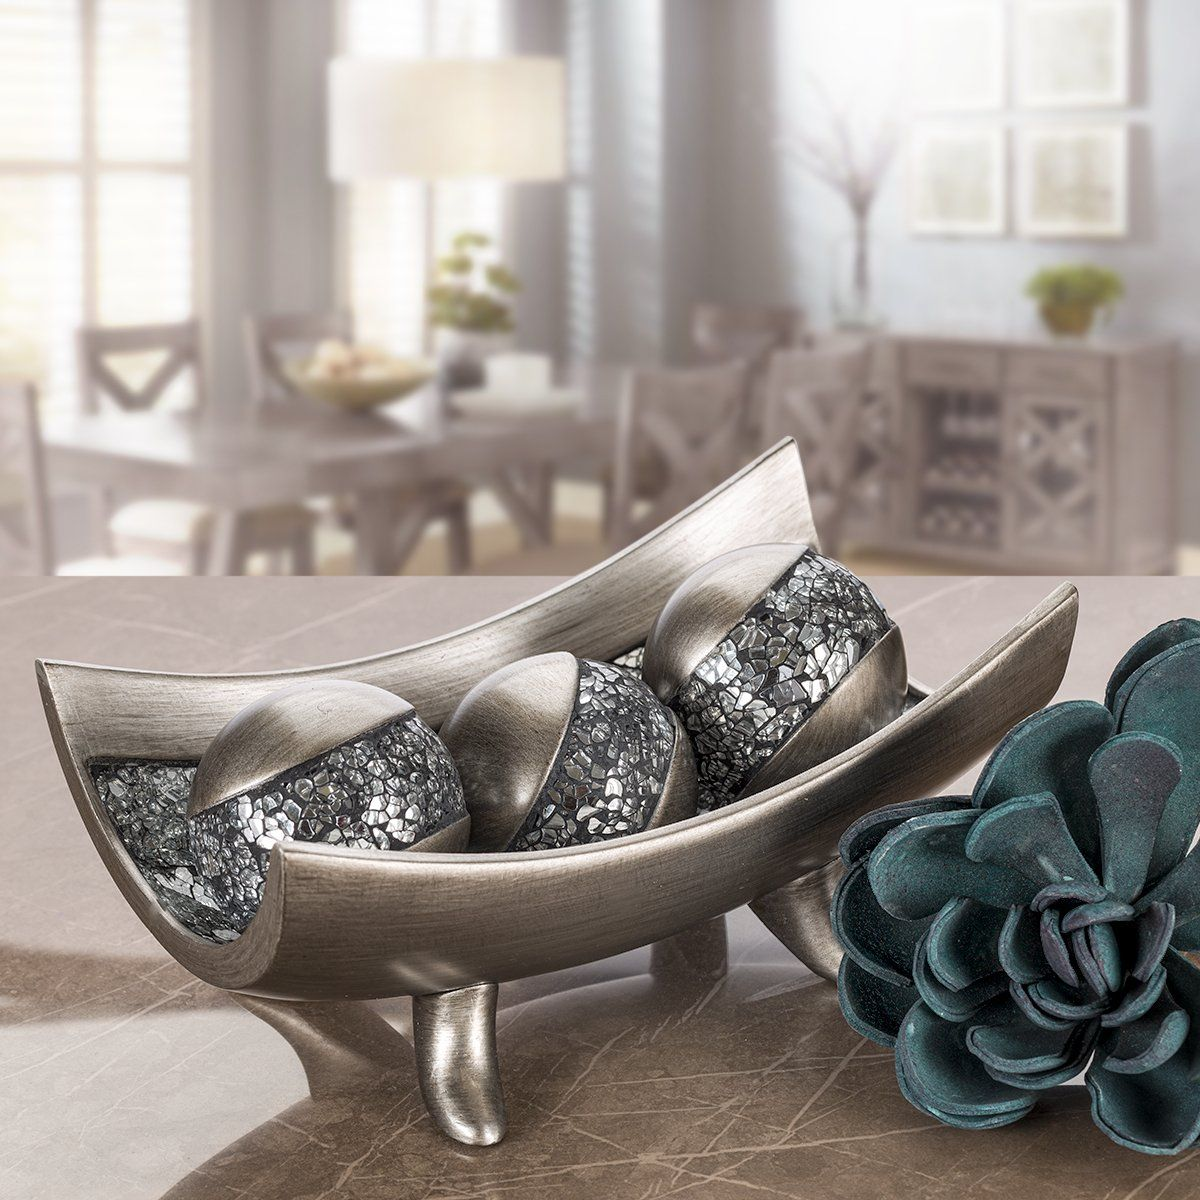 Creative Scents Schonwerk Silver Decorative Orbs For Bowls And